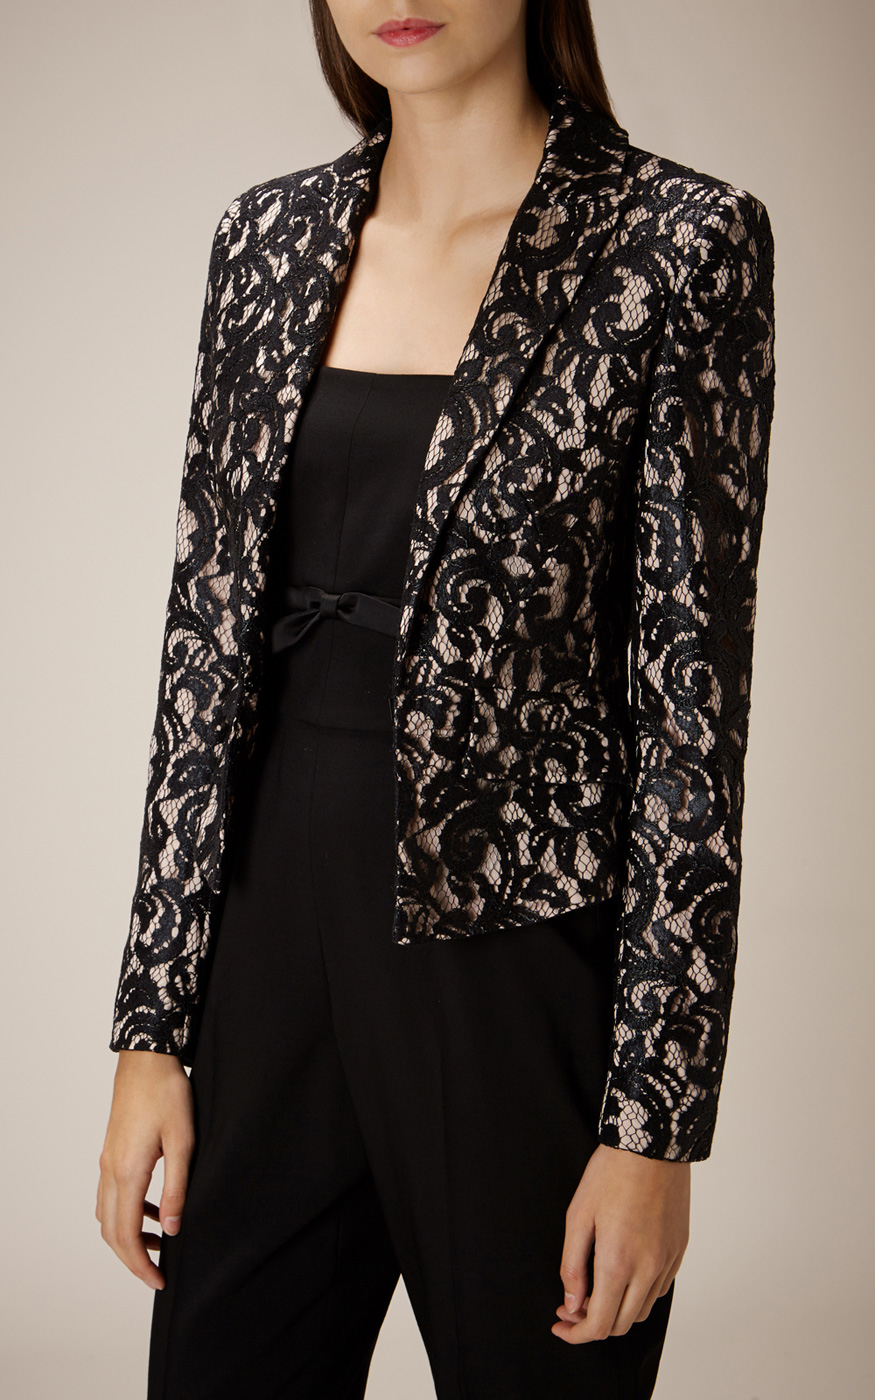 Get free shipping on Caroline Rose Luxury Lace Jacket, Gold/Black at Neiman Marcus. Shop the latest luxury fashions from top designers.